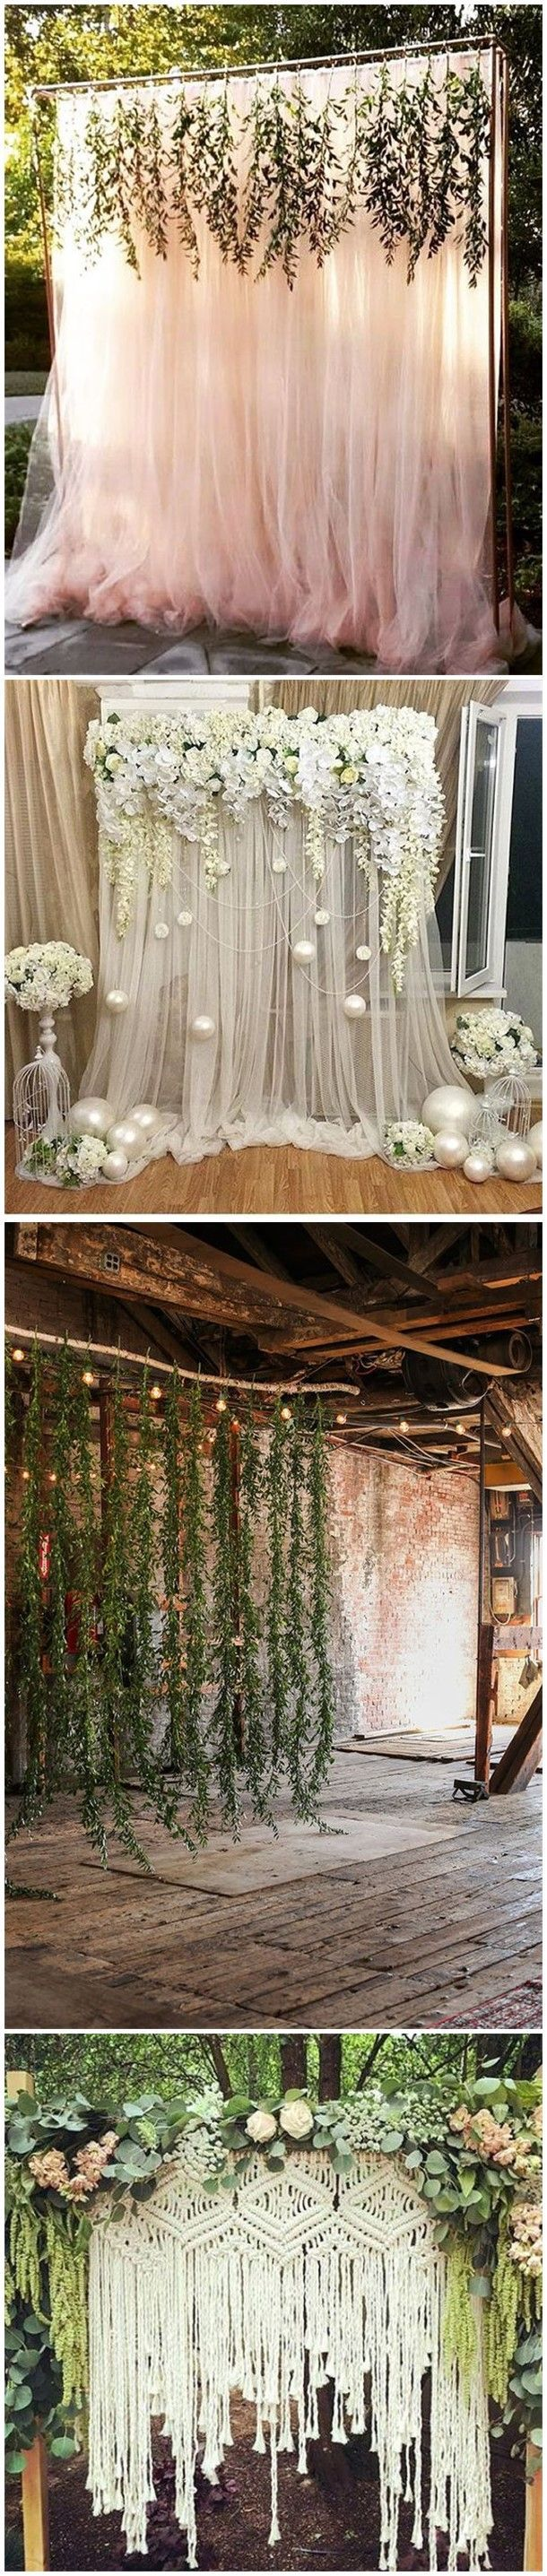 Wedding decorations backdrop   Unique and Breathtaking Wedding Backdrop Ideas  Backdrops